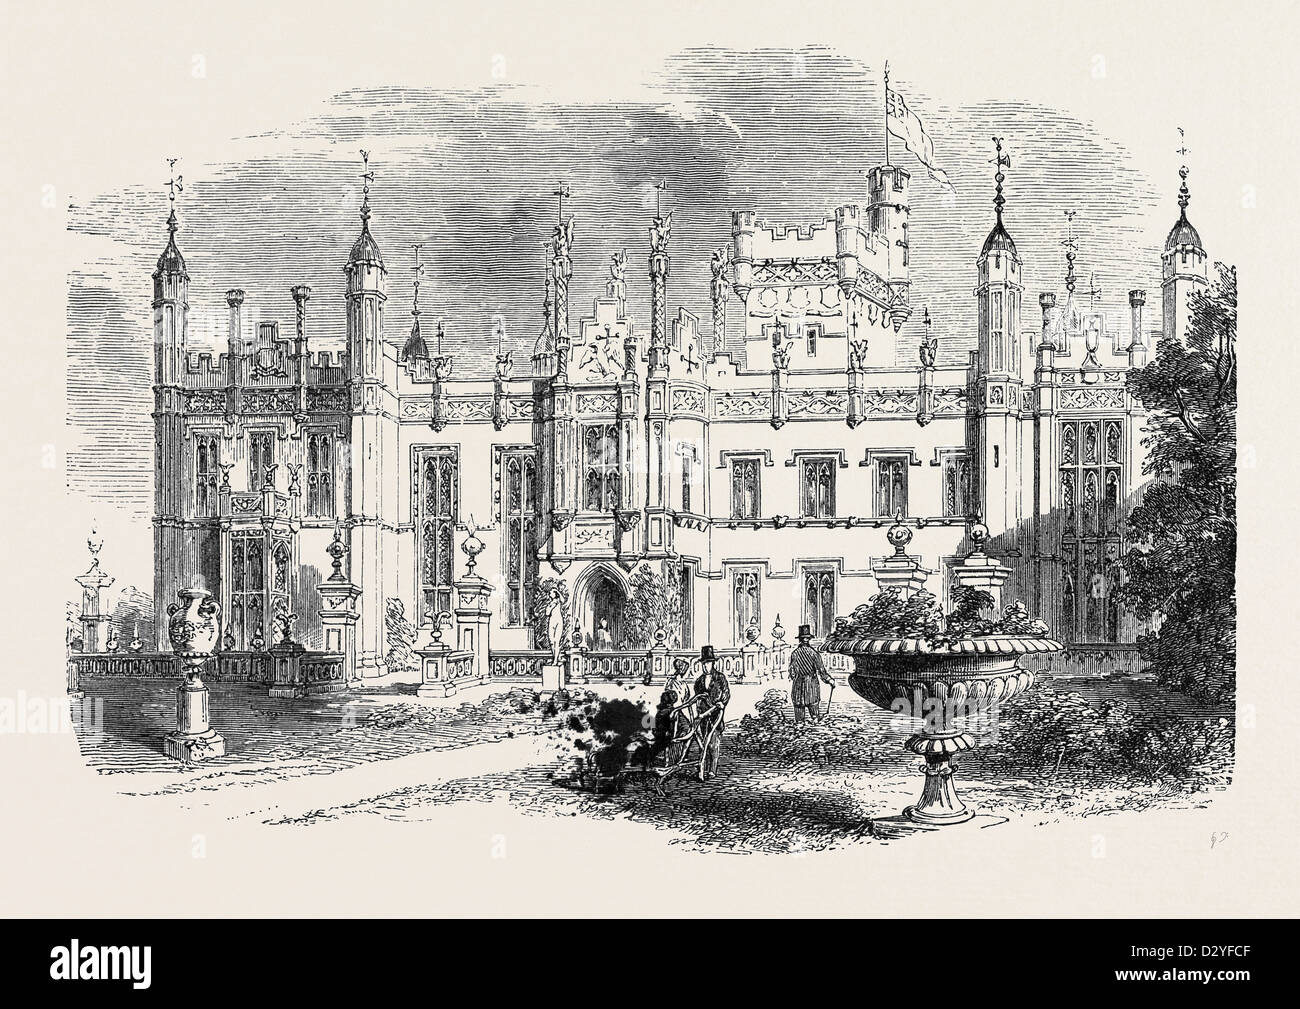 KNEBWORTH HERTFORDSHIRE THE SEAT OF THE LATE LORD LYTTON 1873 Stock Photo